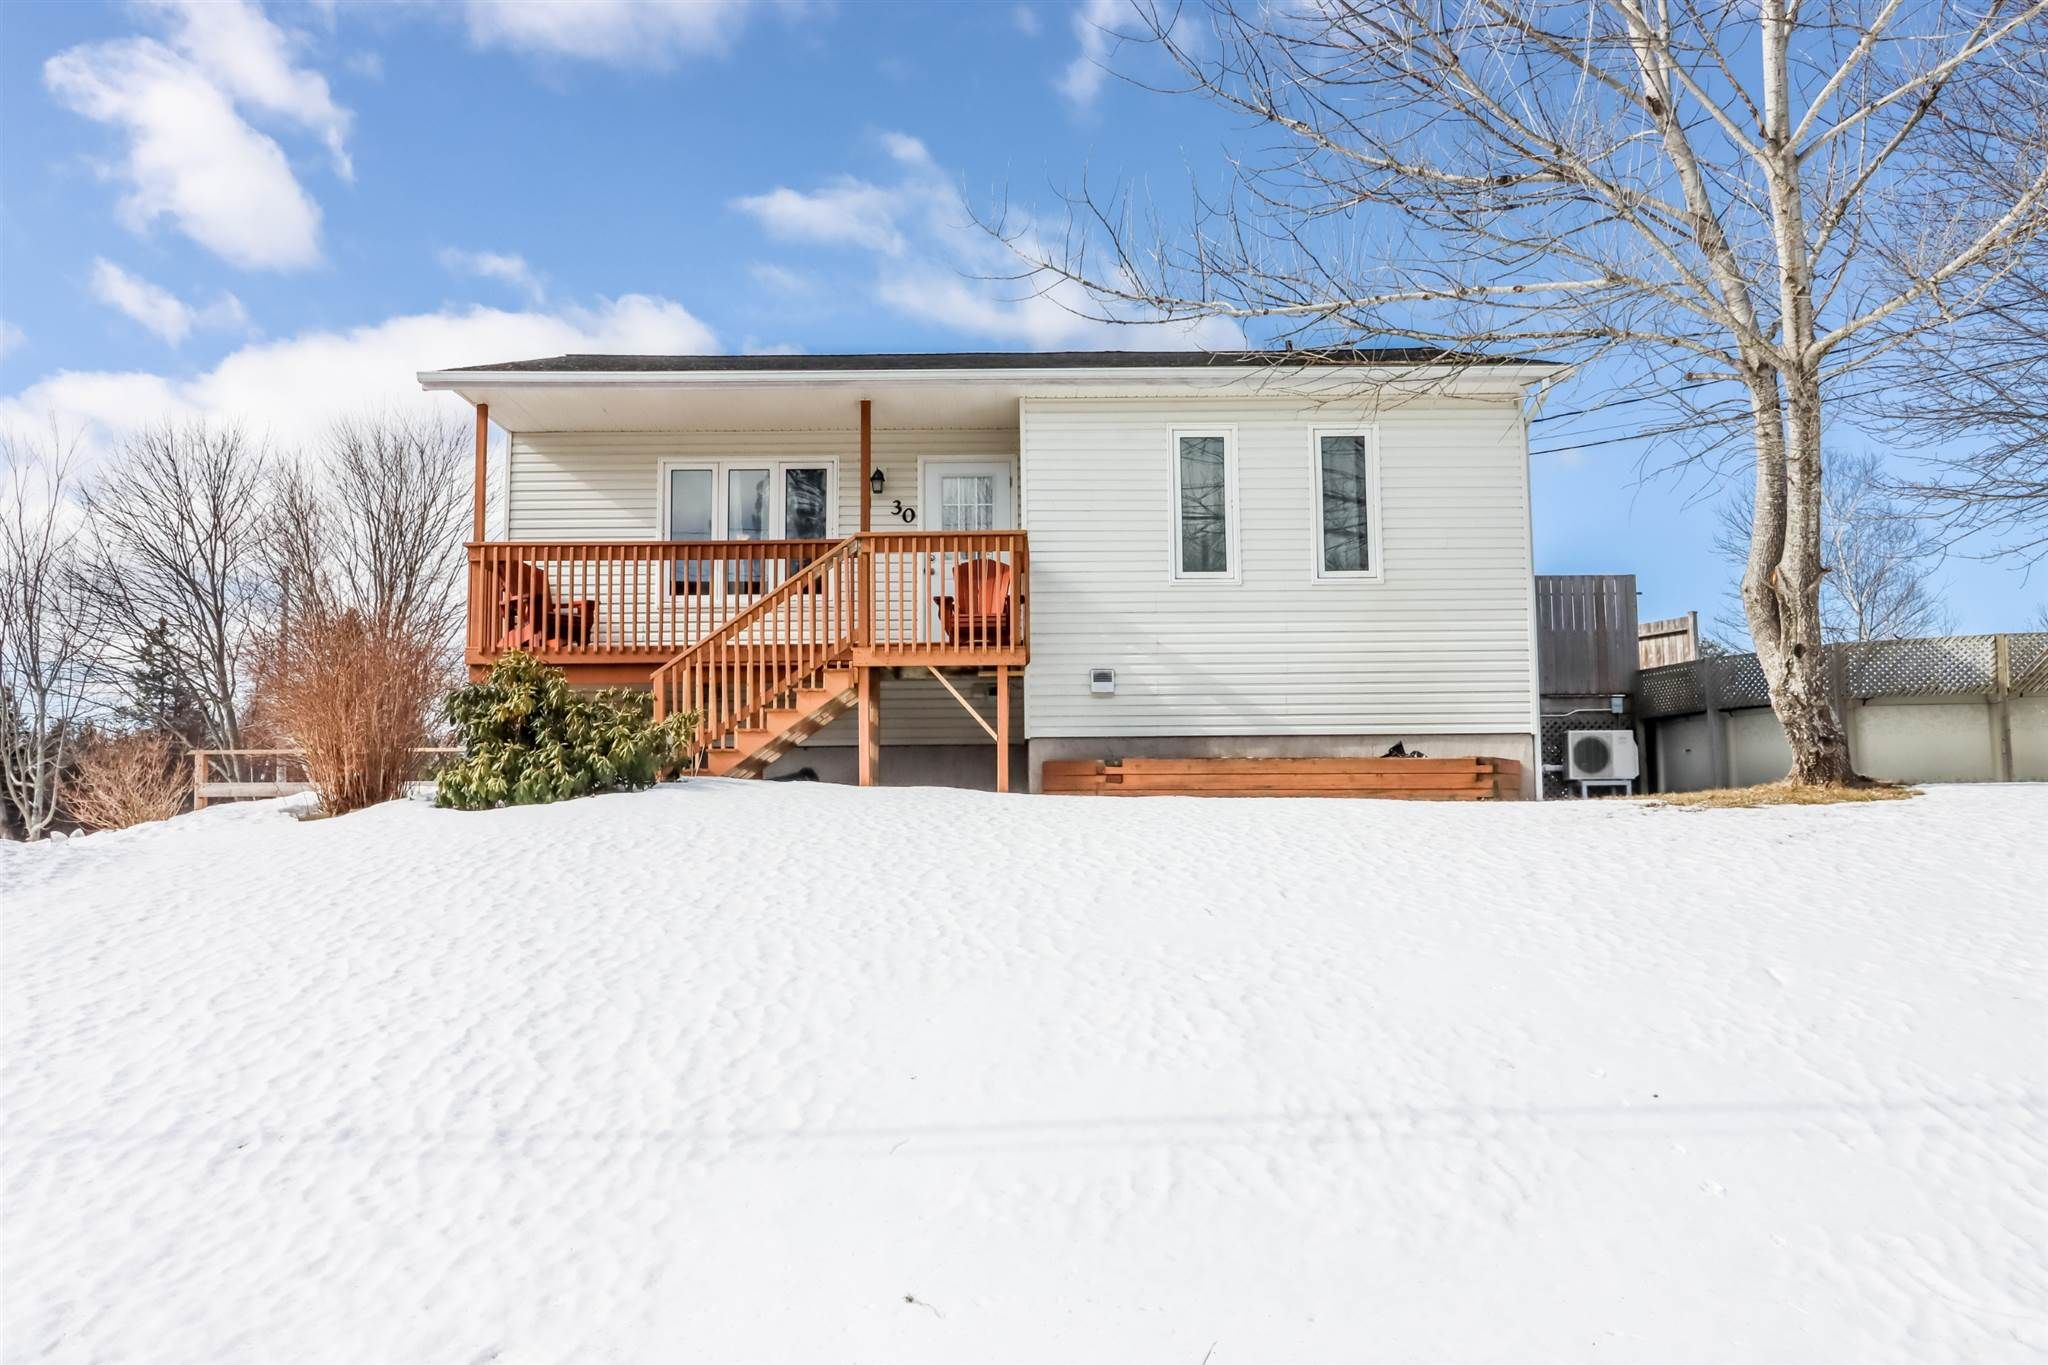 Main Photo: 30 Cherry Lane in Kingston: 404-Kings County Residential for sale (Annapolis Valley)  : MLS®# 202104134